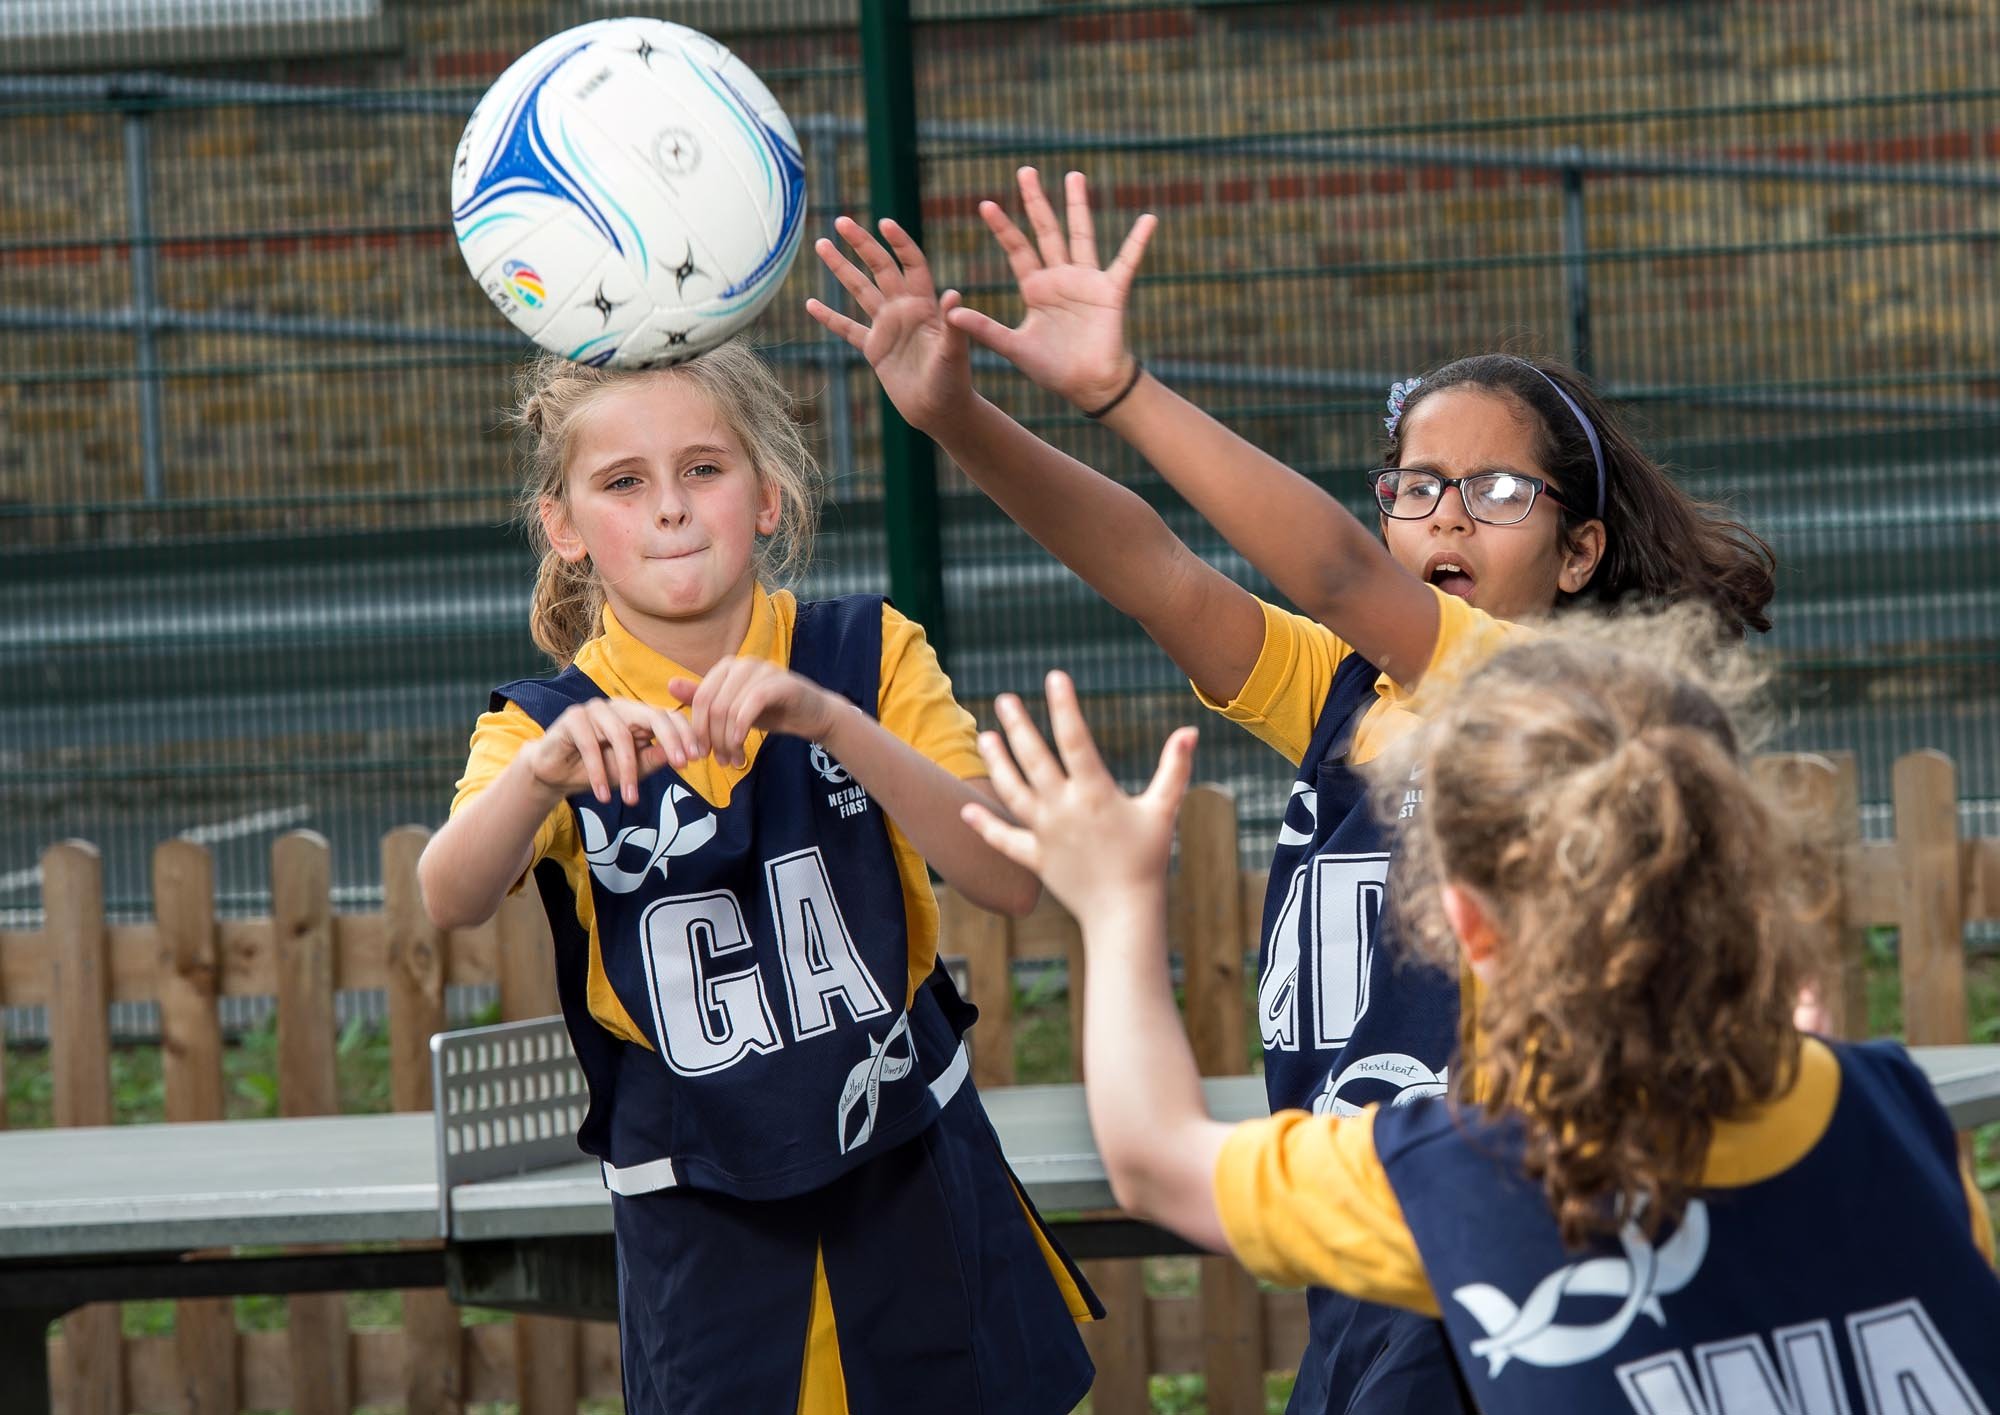 Netball match in action